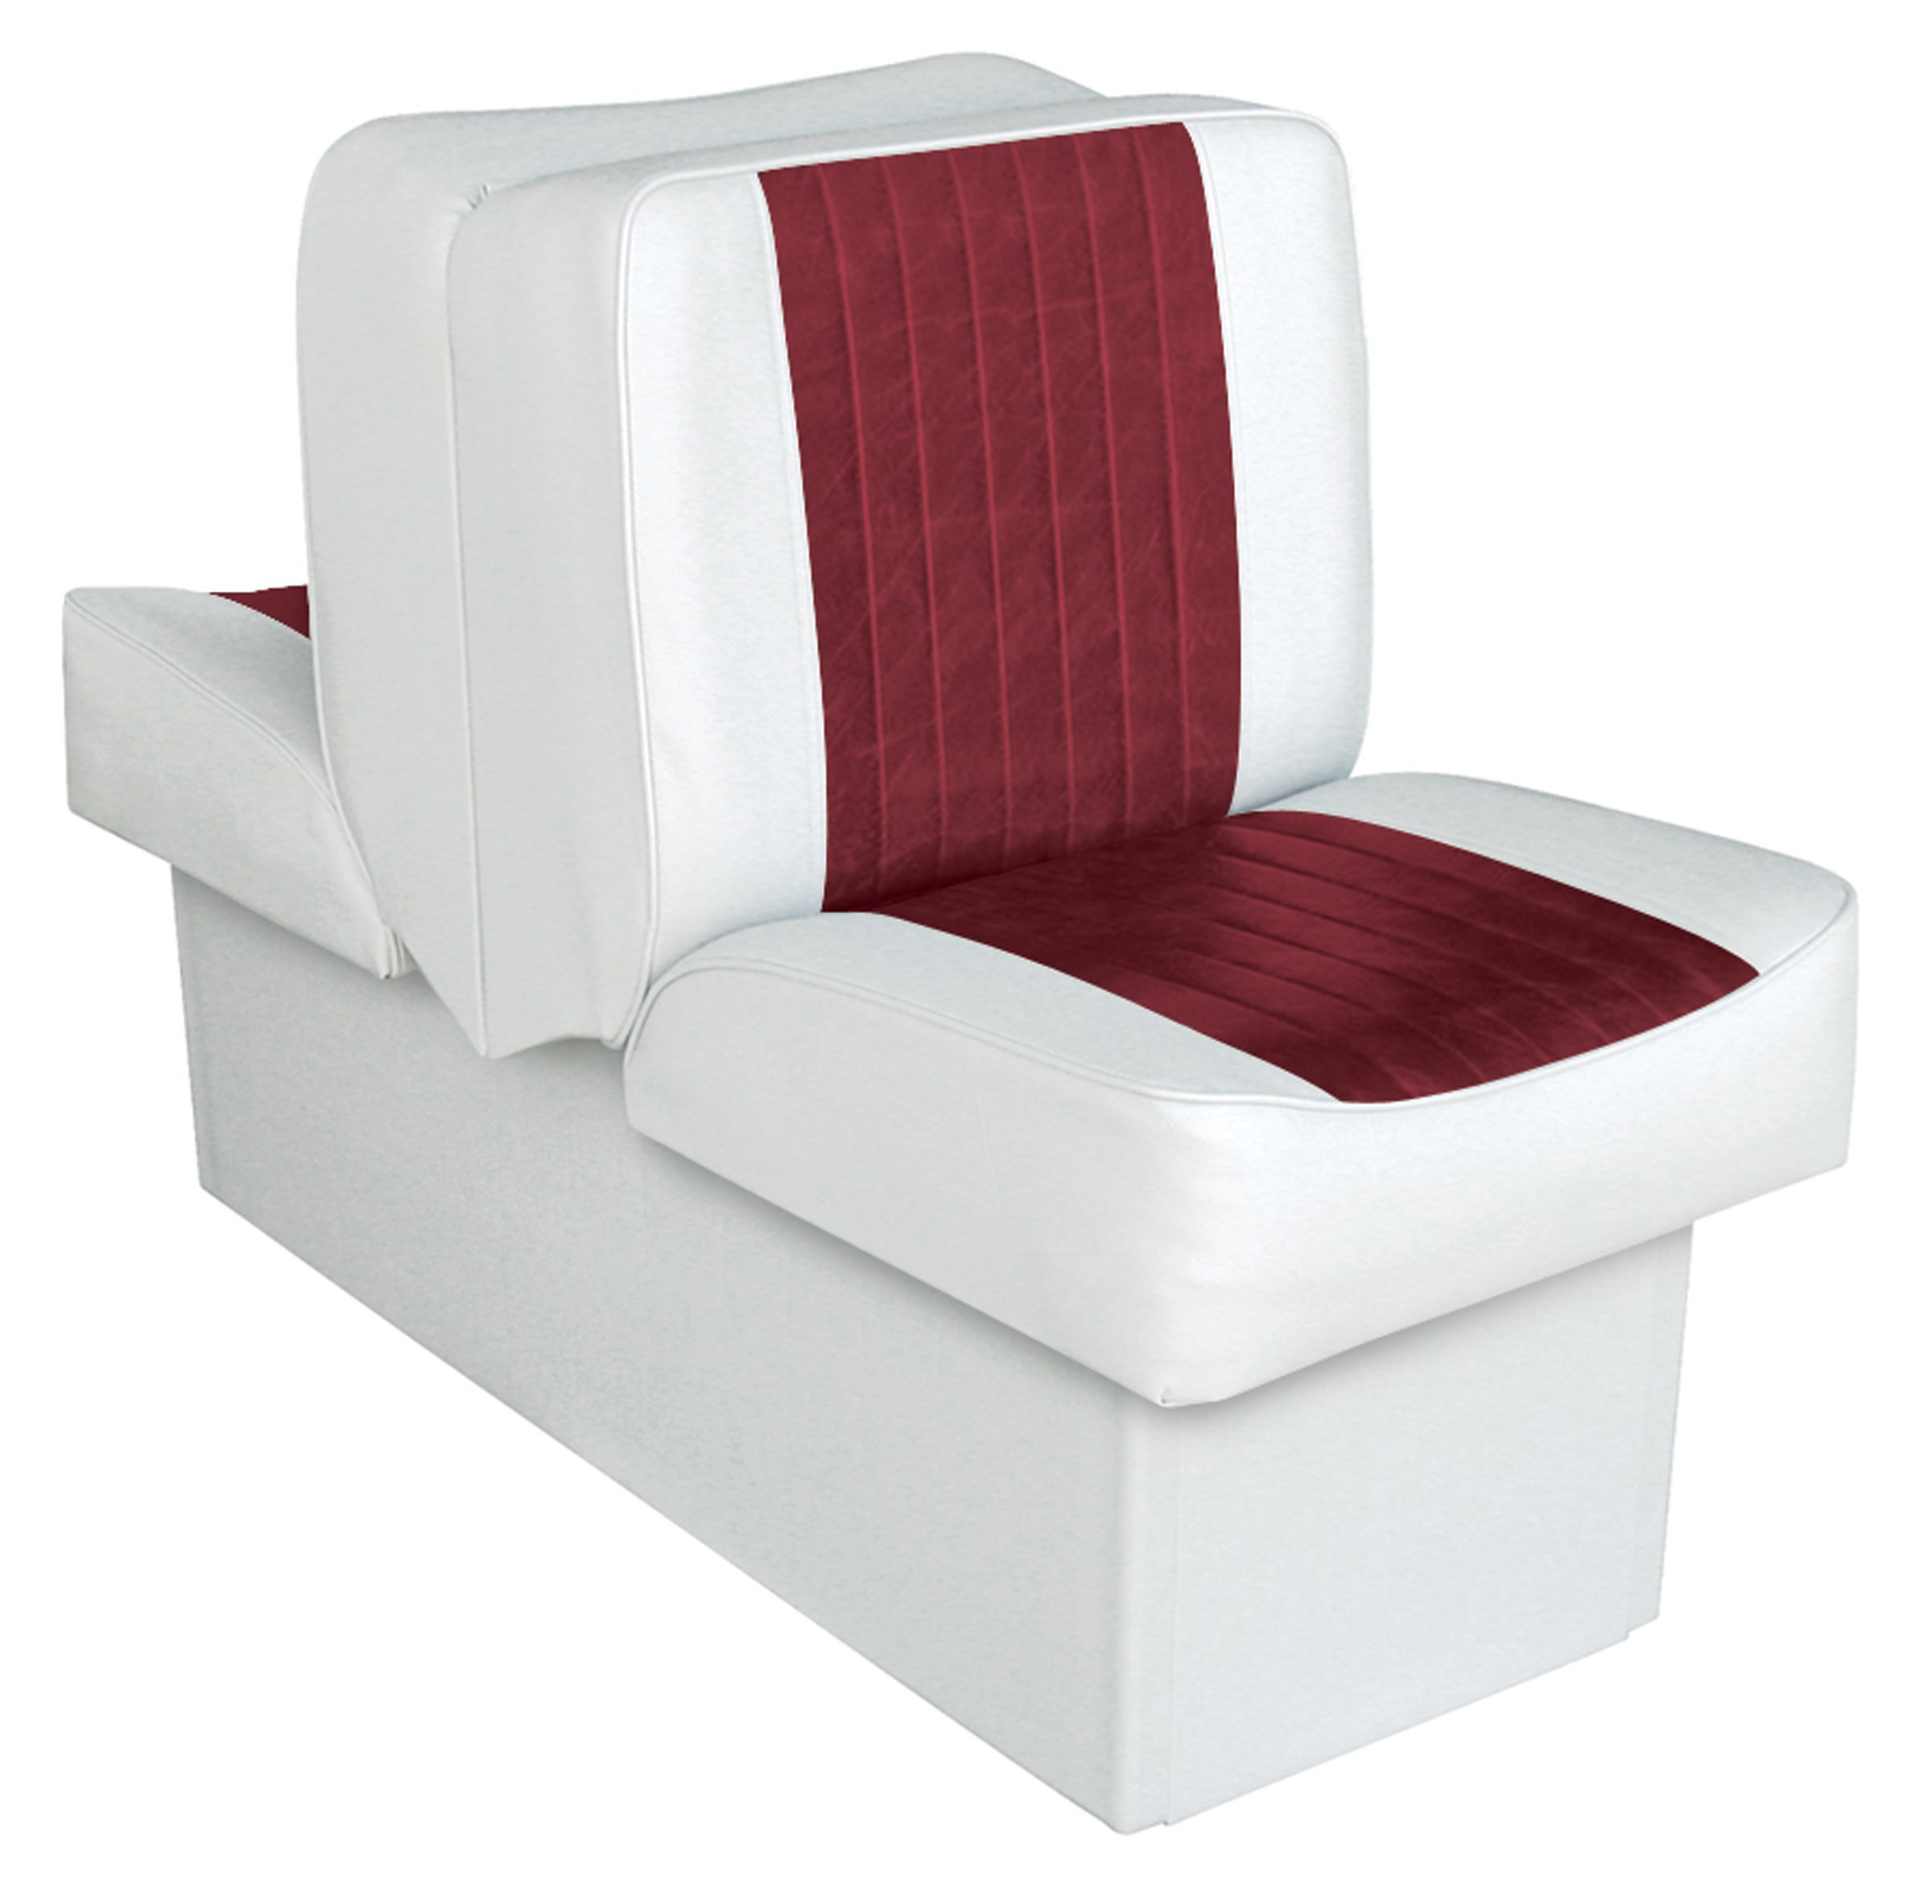 Wise 8WD707P-1-925 Deluxe Lounge Seat (White/Red)